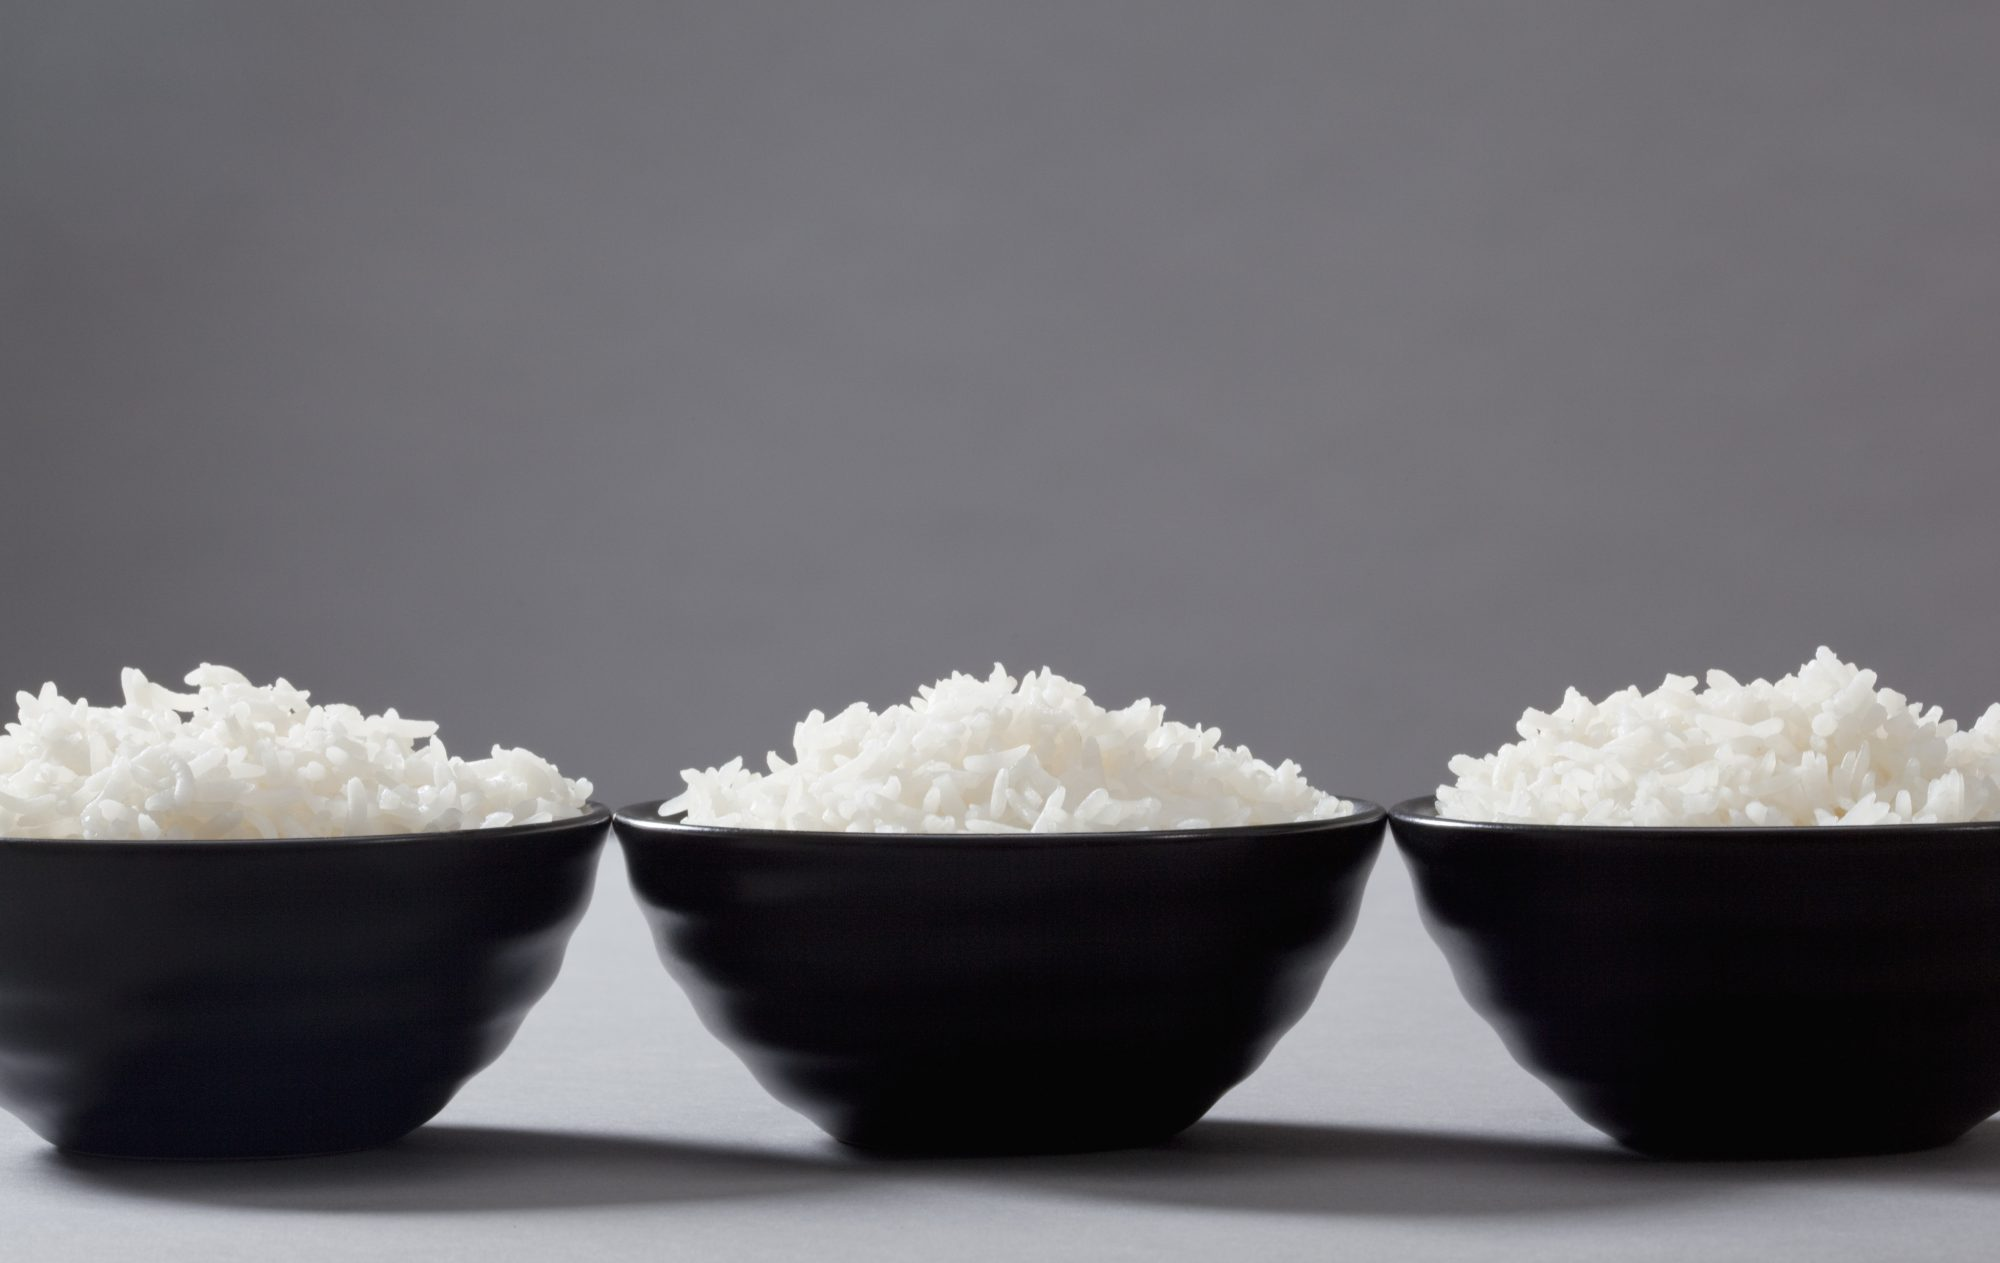 I Finally Know Why I Suck at Cooking Rice (AND How to Stop Sucking at It)